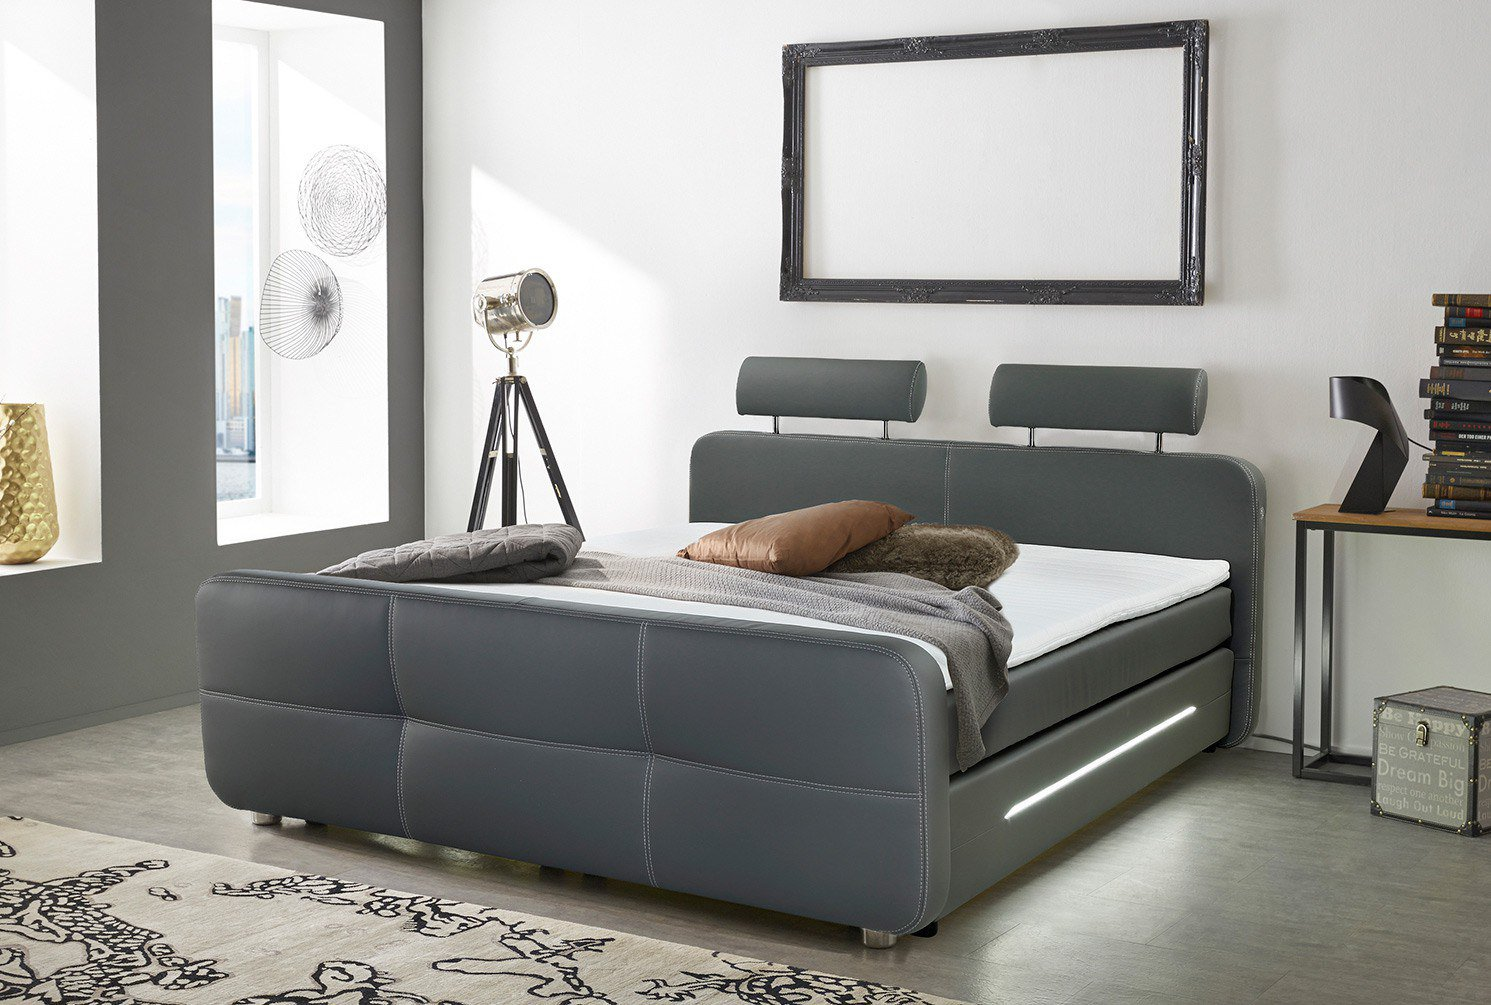 jockenh fer gina boxspringbett in grau m bel letz ihr online shop. Black Bedroom Furniture Sets. Home Design Ideas